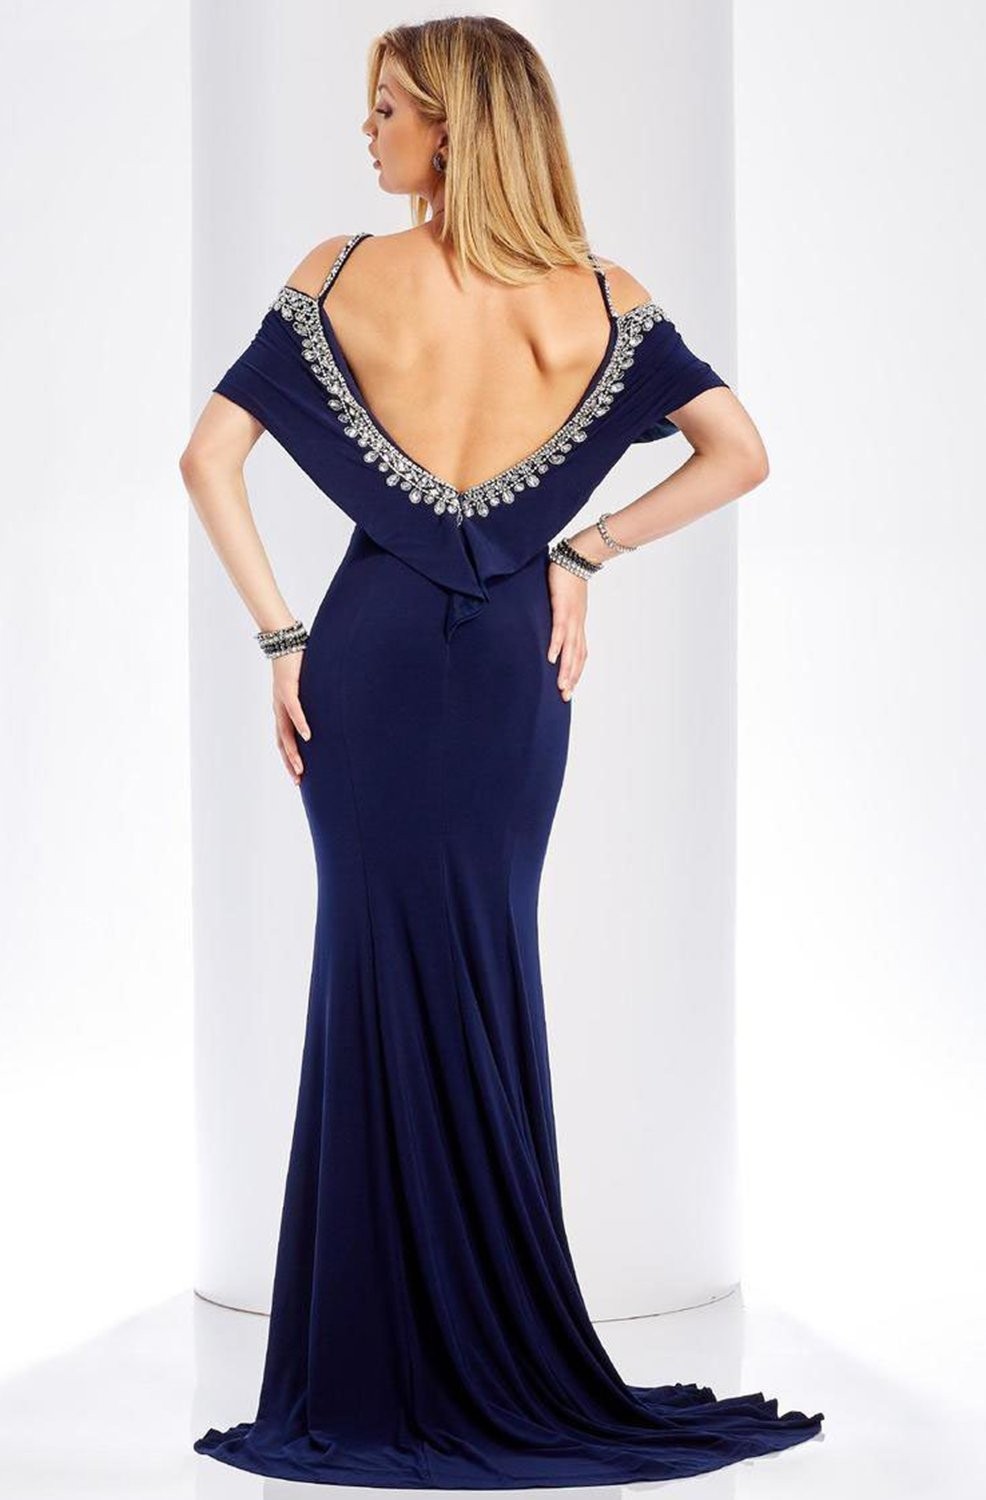 Clarisse - 3497 Jeweled Scoop Neck Sheath Dress in Blue